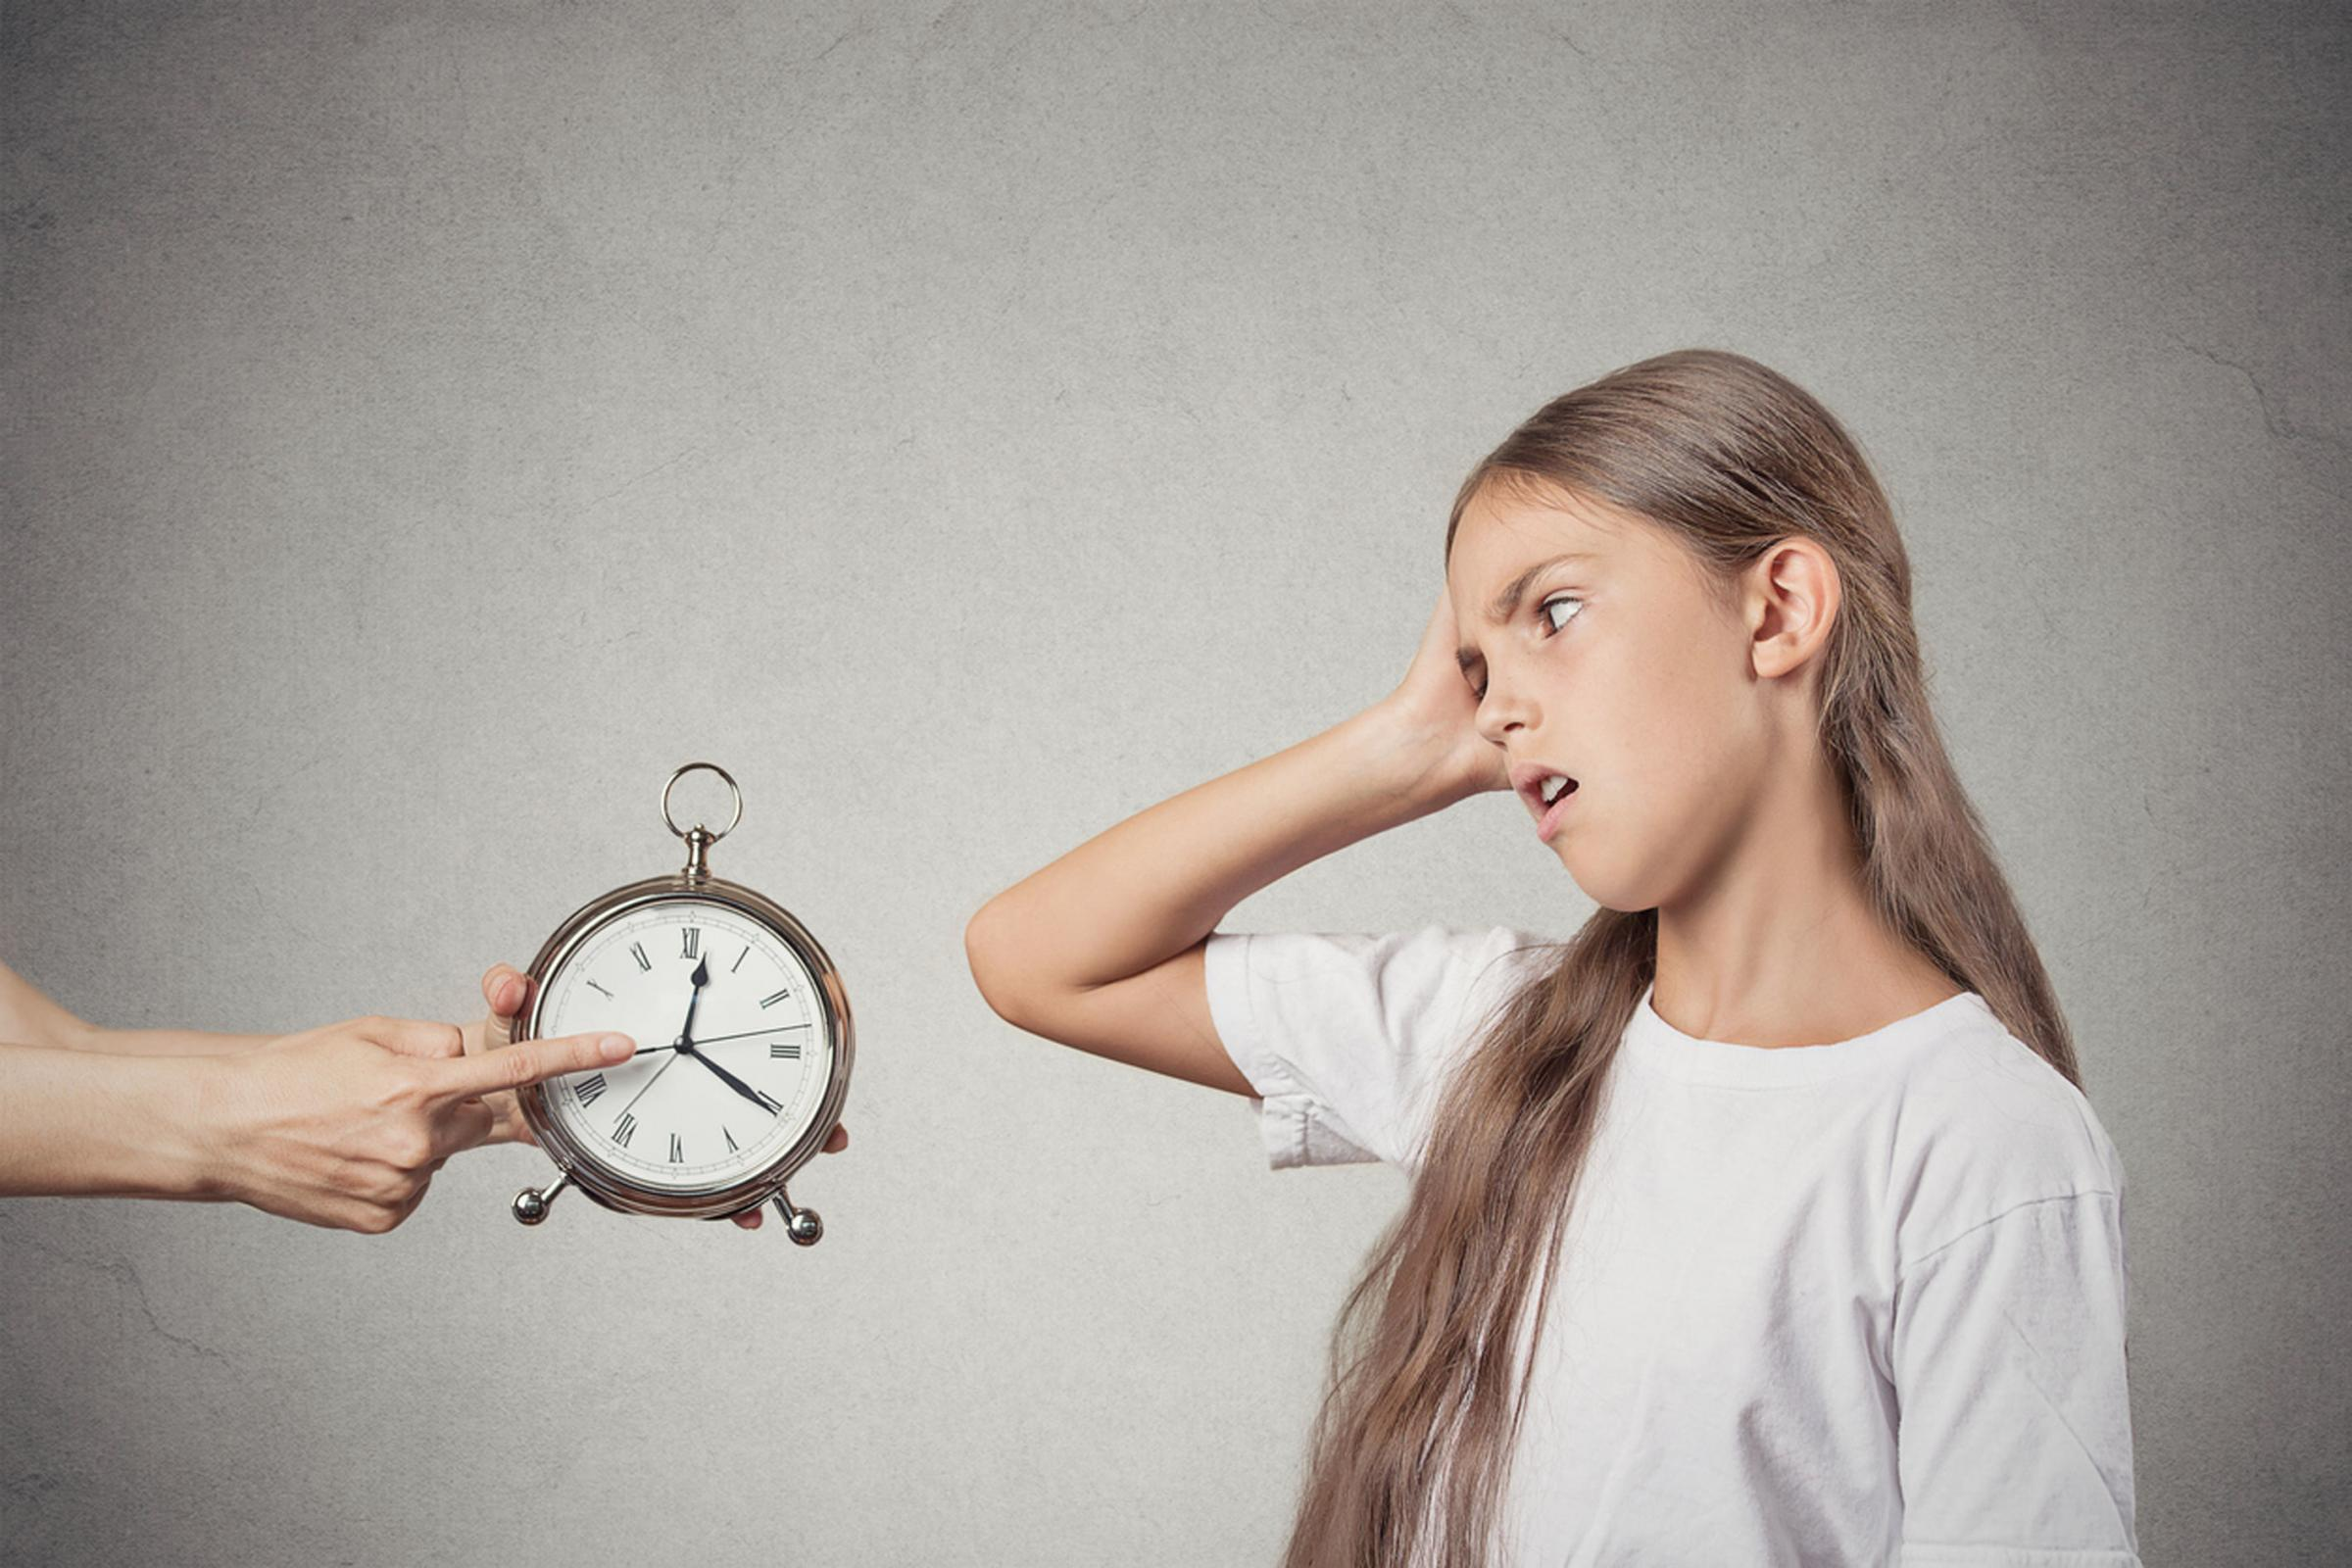 When do the clocks go forward - and how to avoid missing out on an hour's sleep